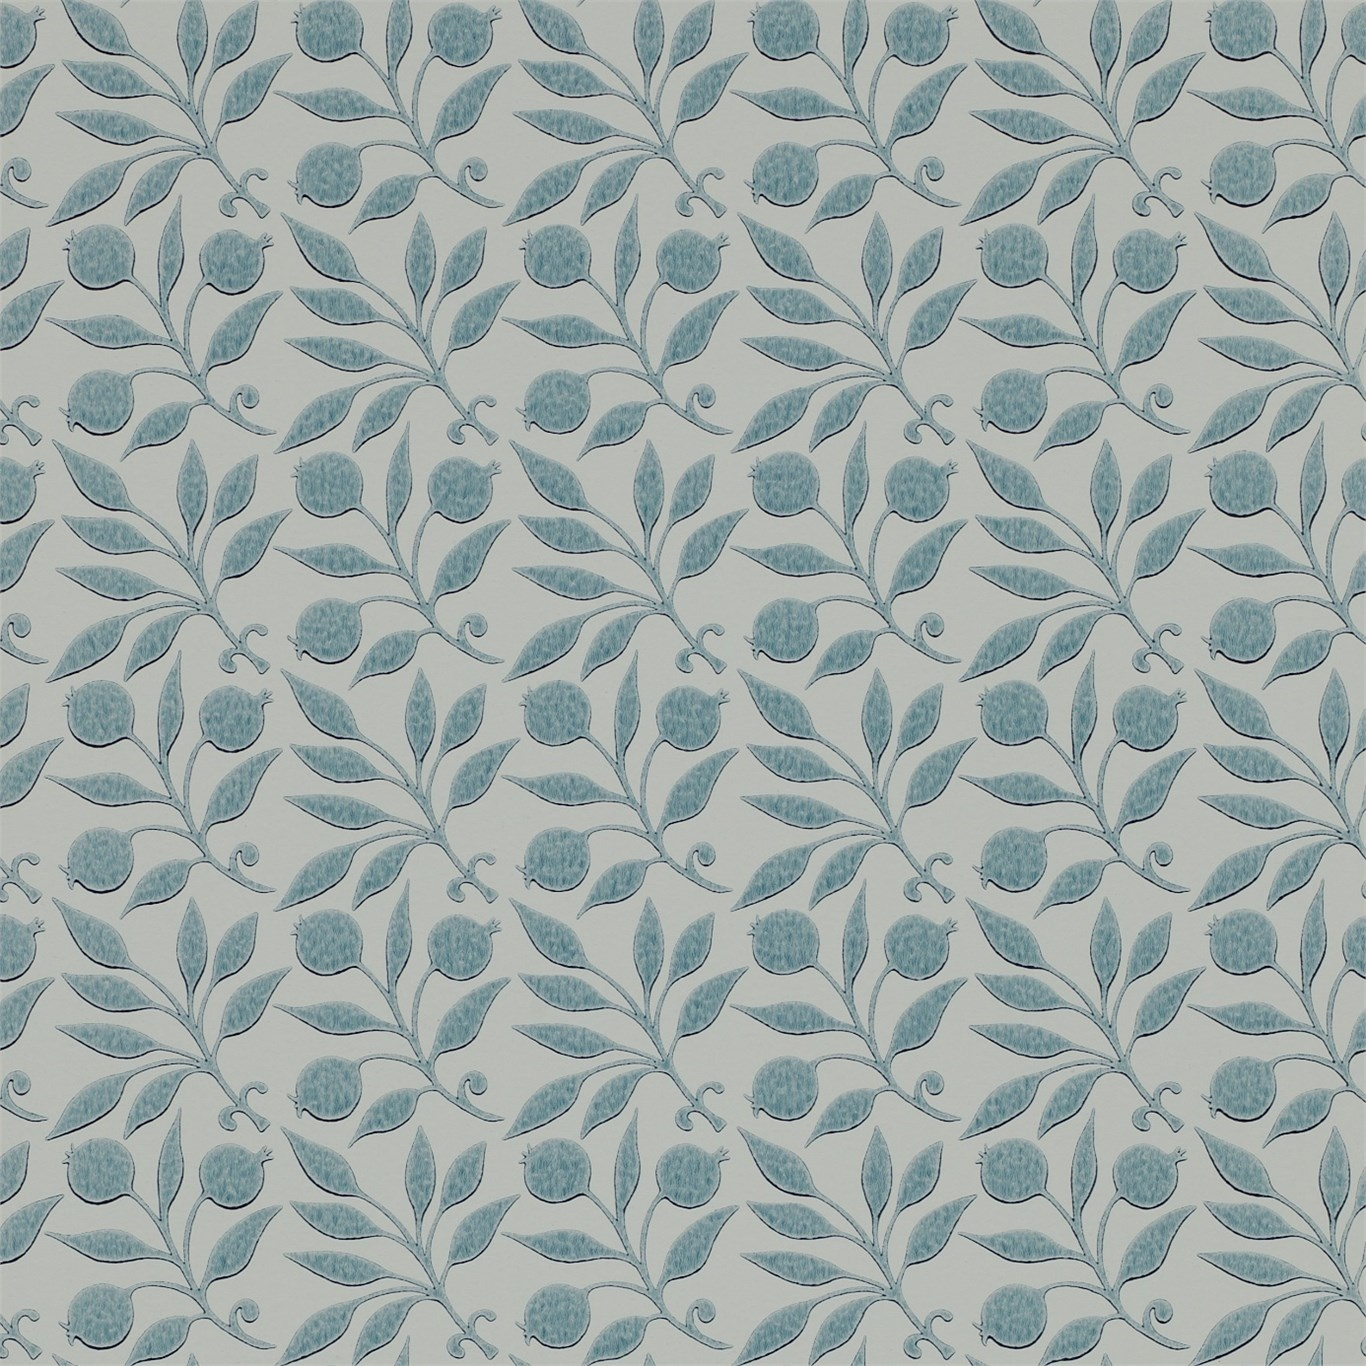 Image of Morris & Co Rosehip Mineral Blue Wallpaper 214710